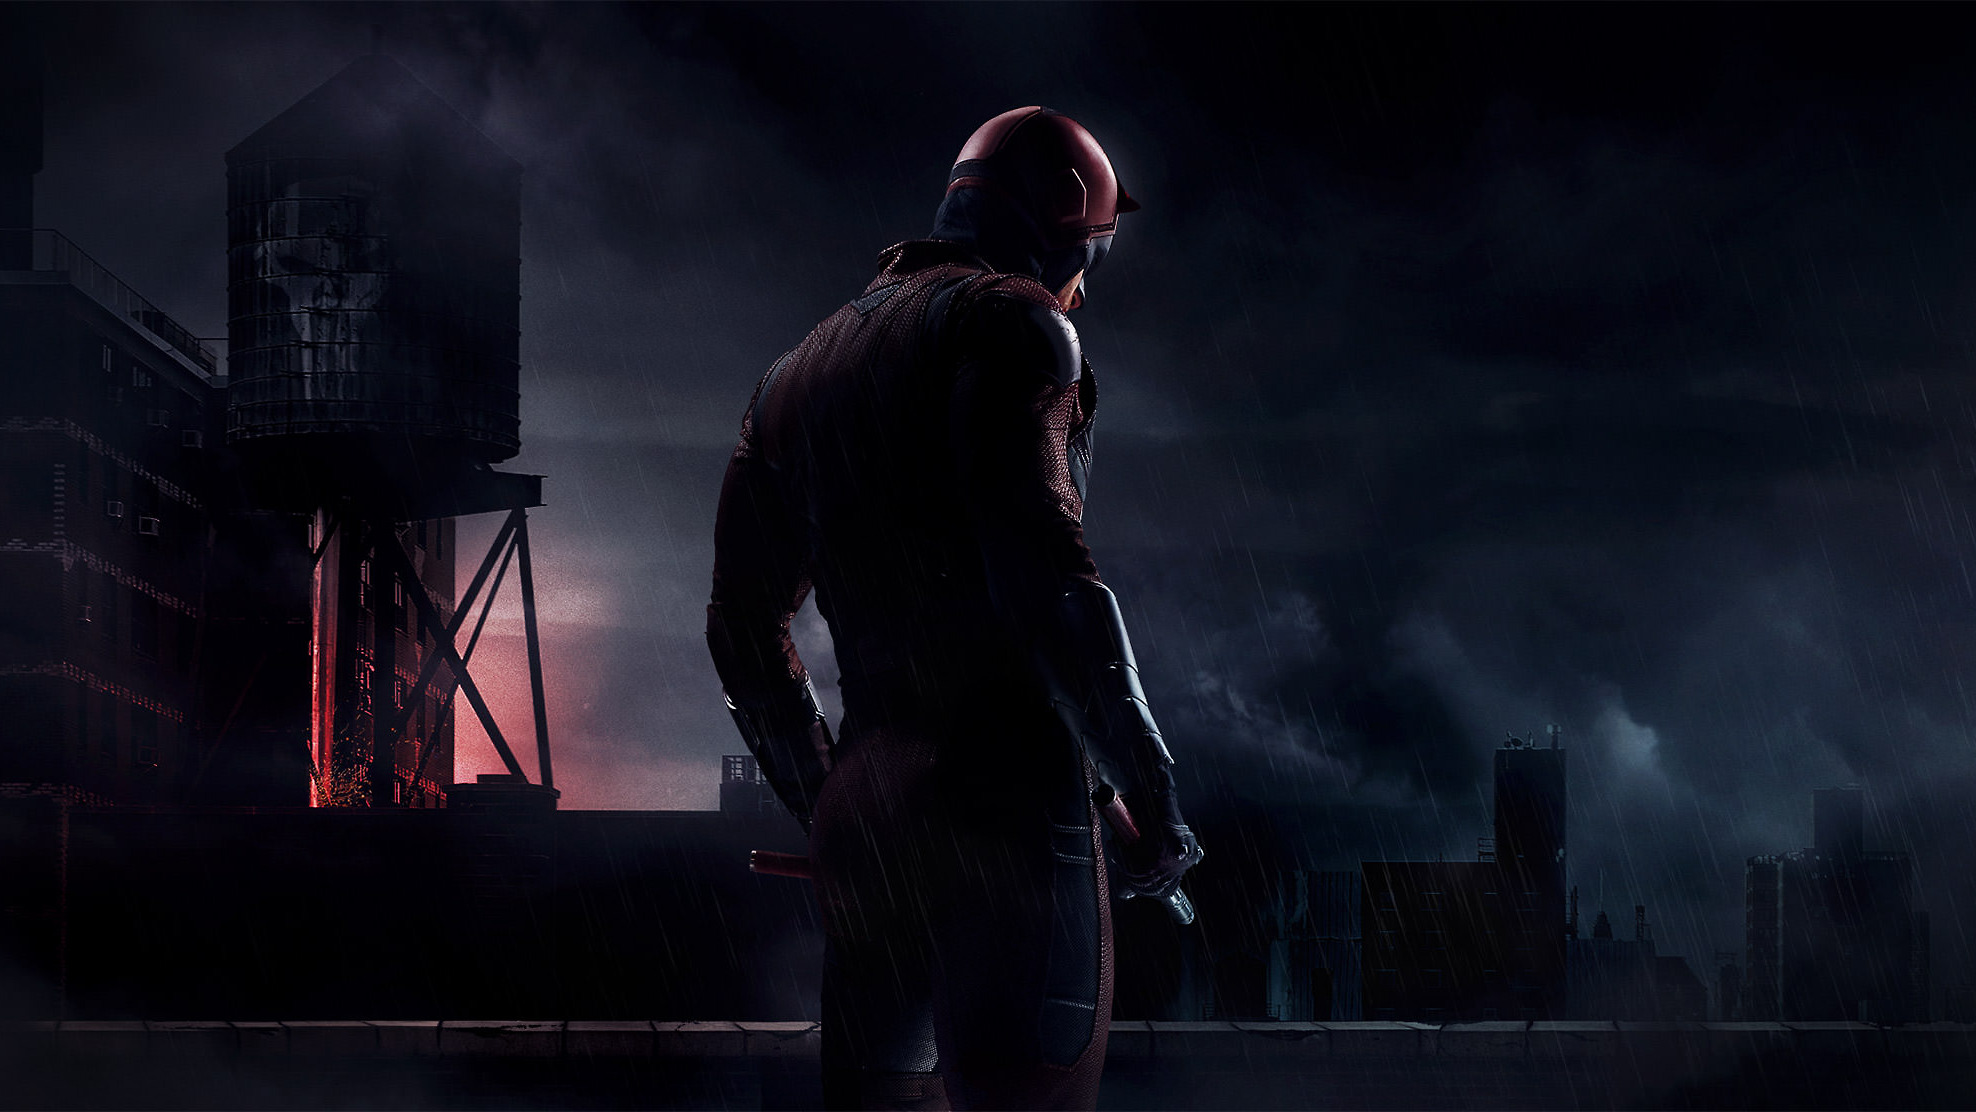 Punishment Finds DAREDEVIL In New Season 2 Motion Posters ...